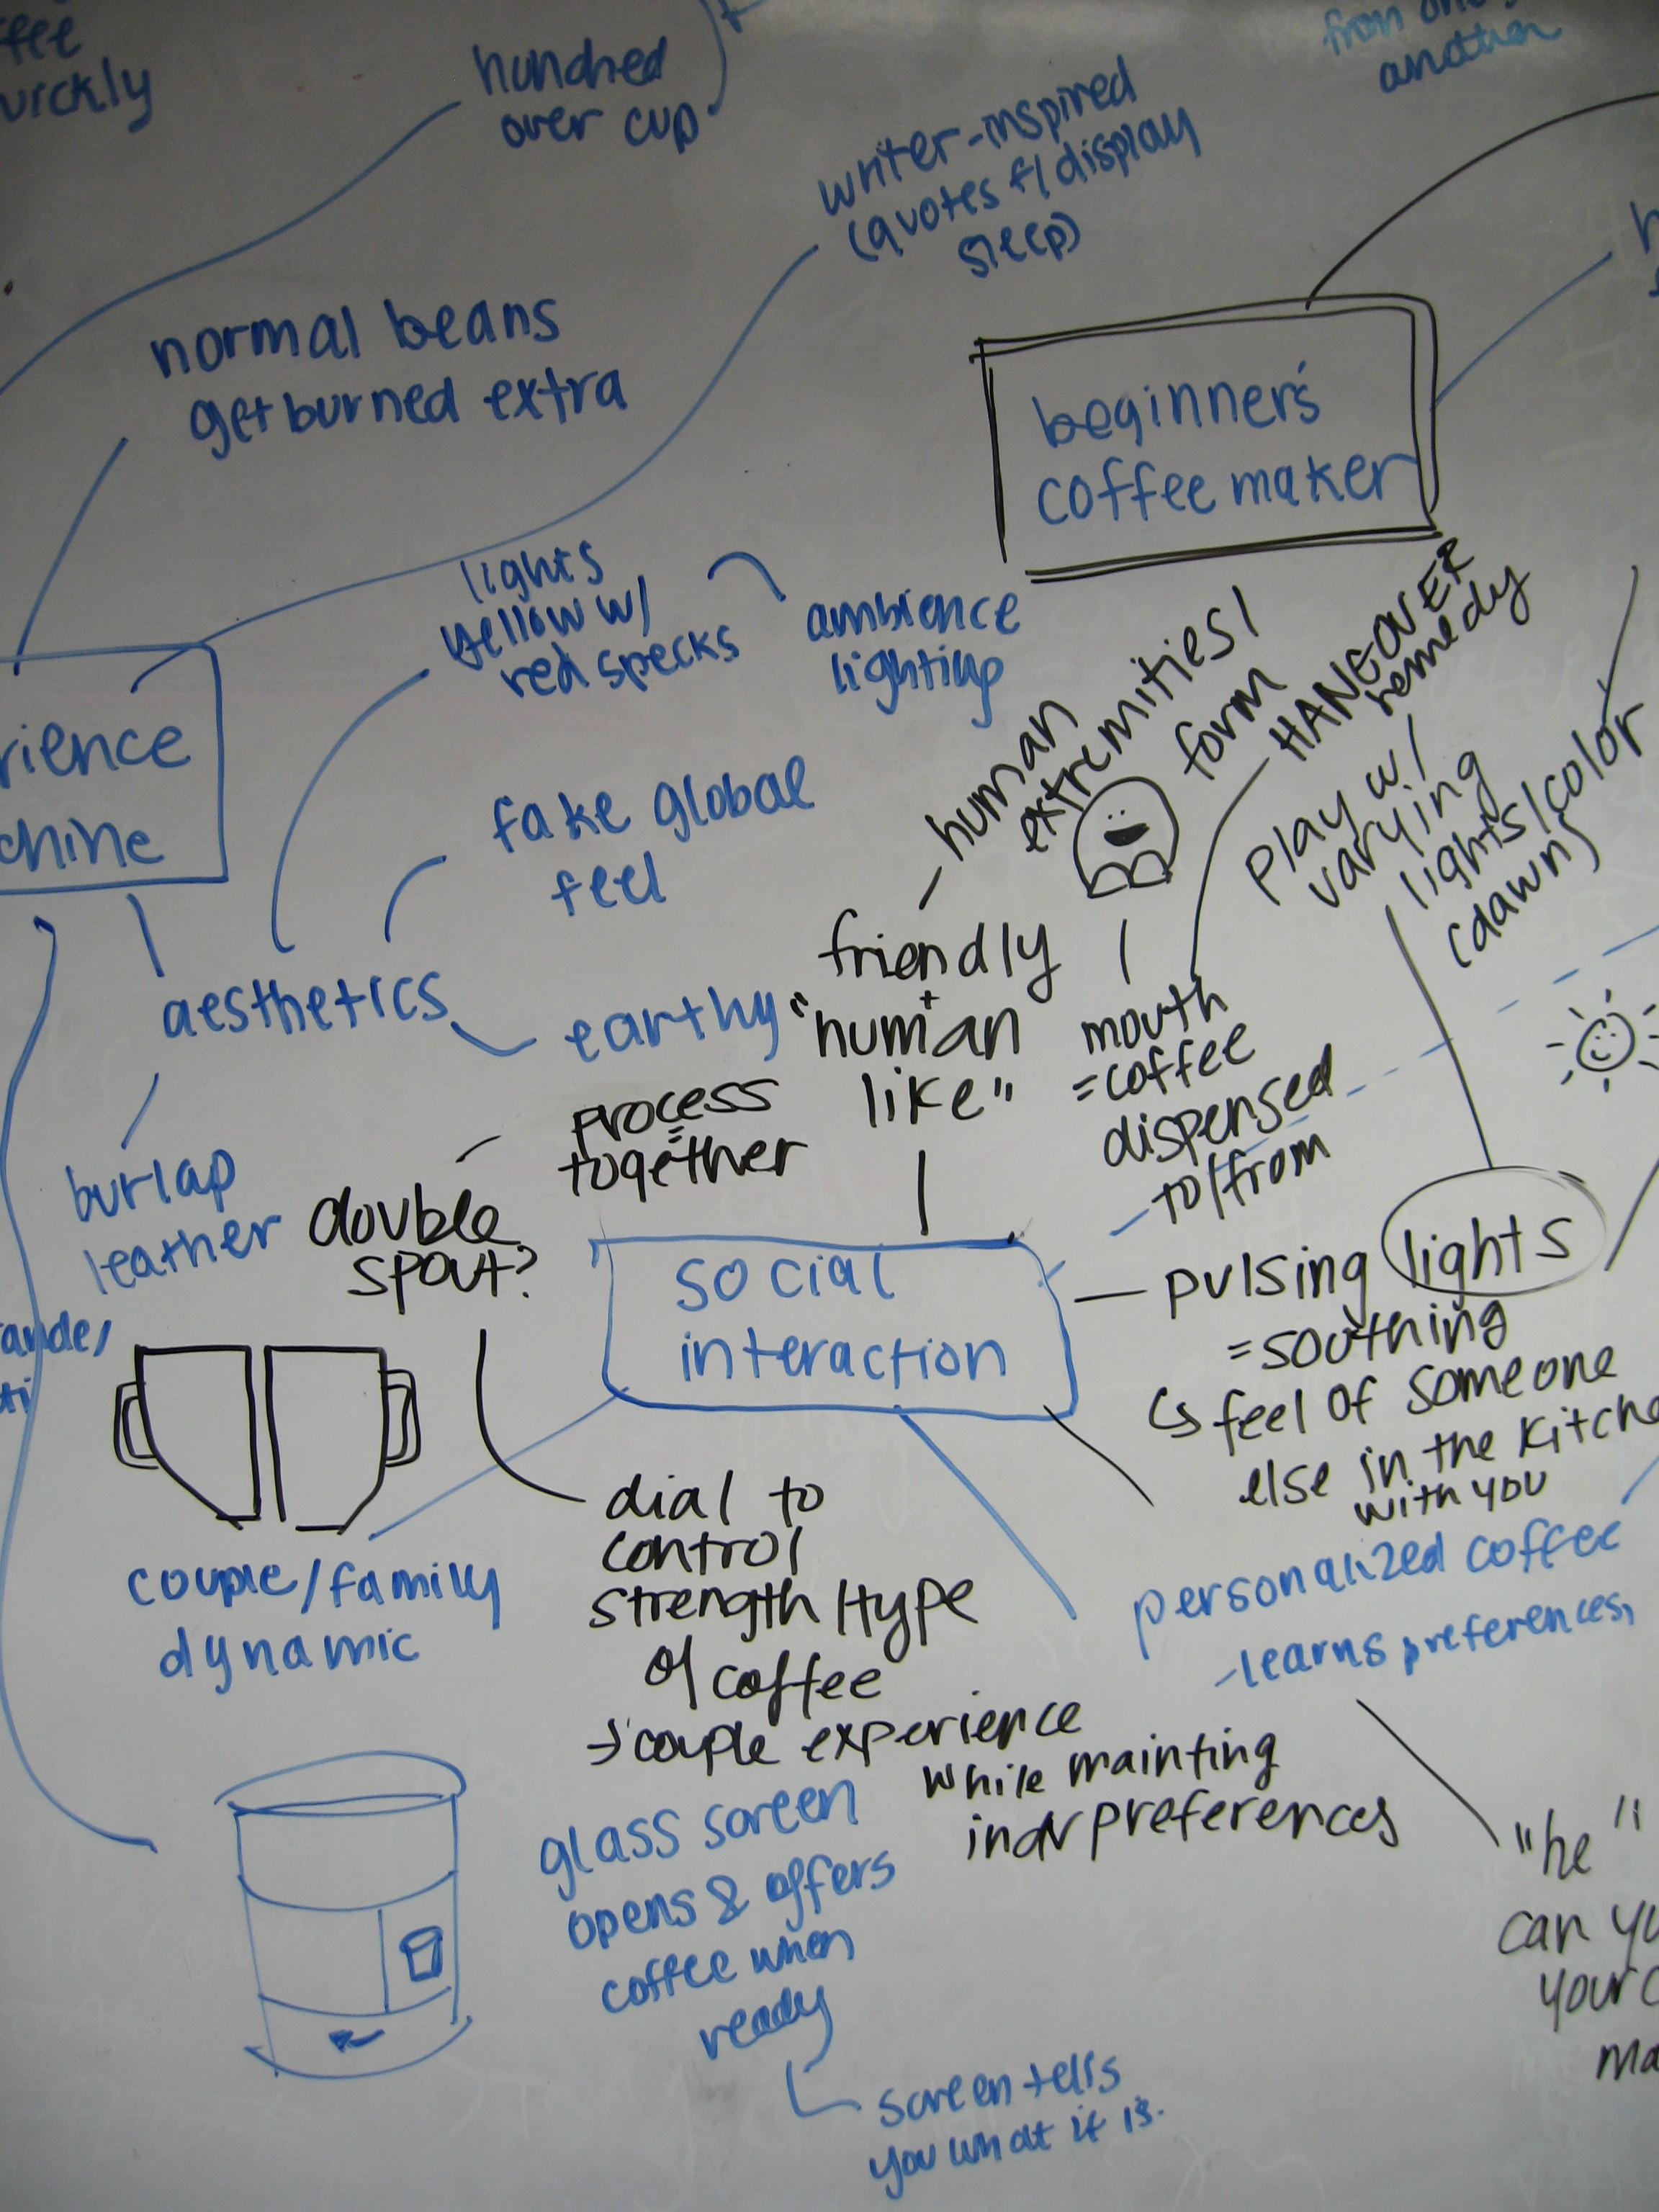 Whiteboarding coffeemaker concepts